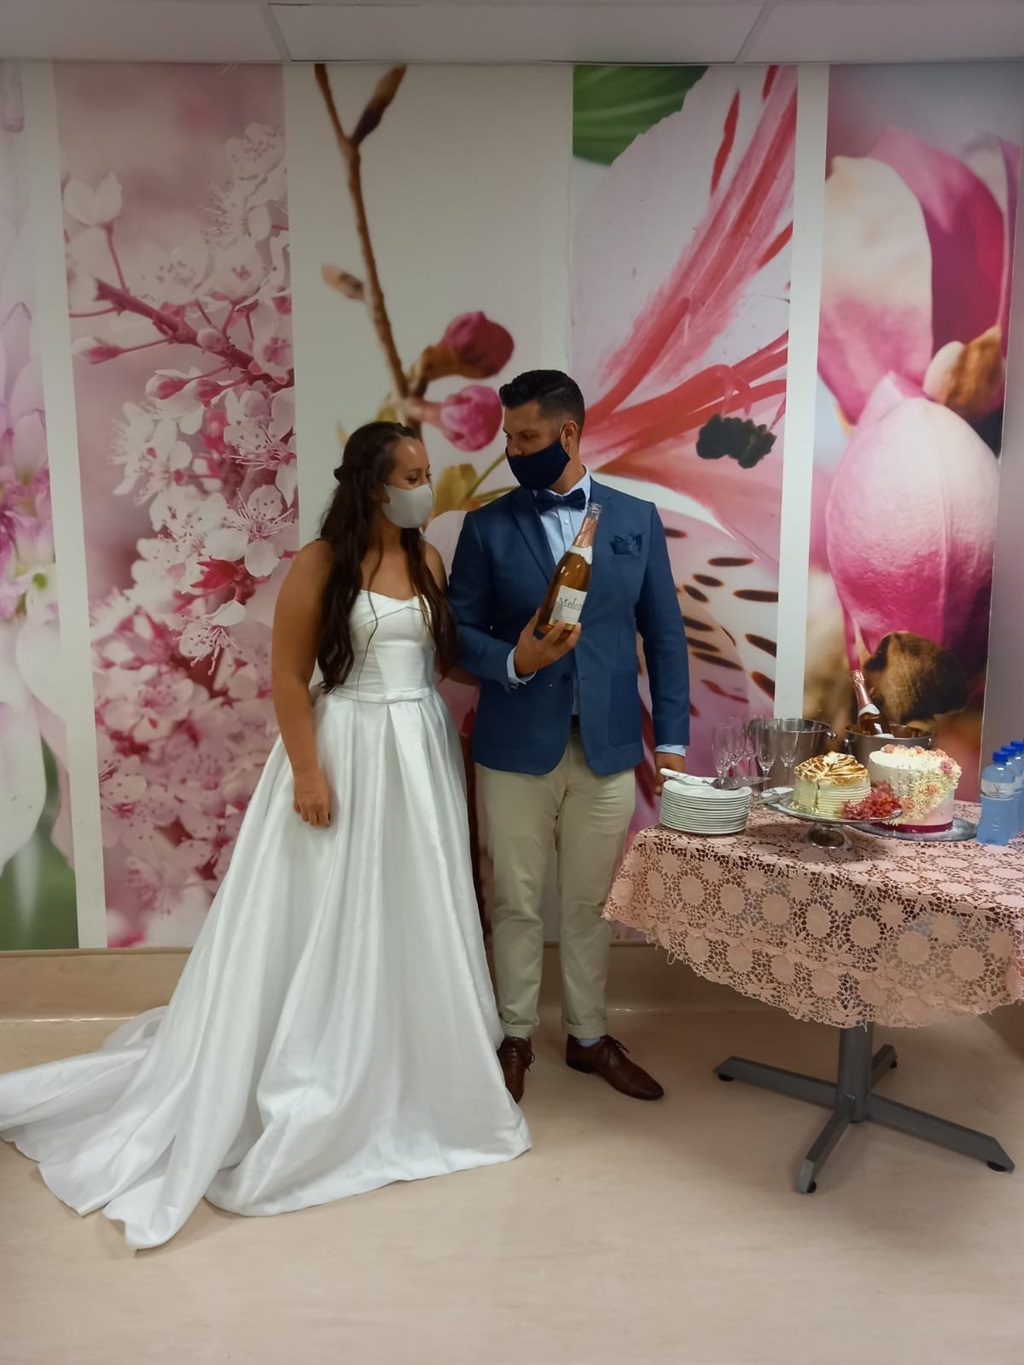 Couple embracing during wedding ceremony at Melome